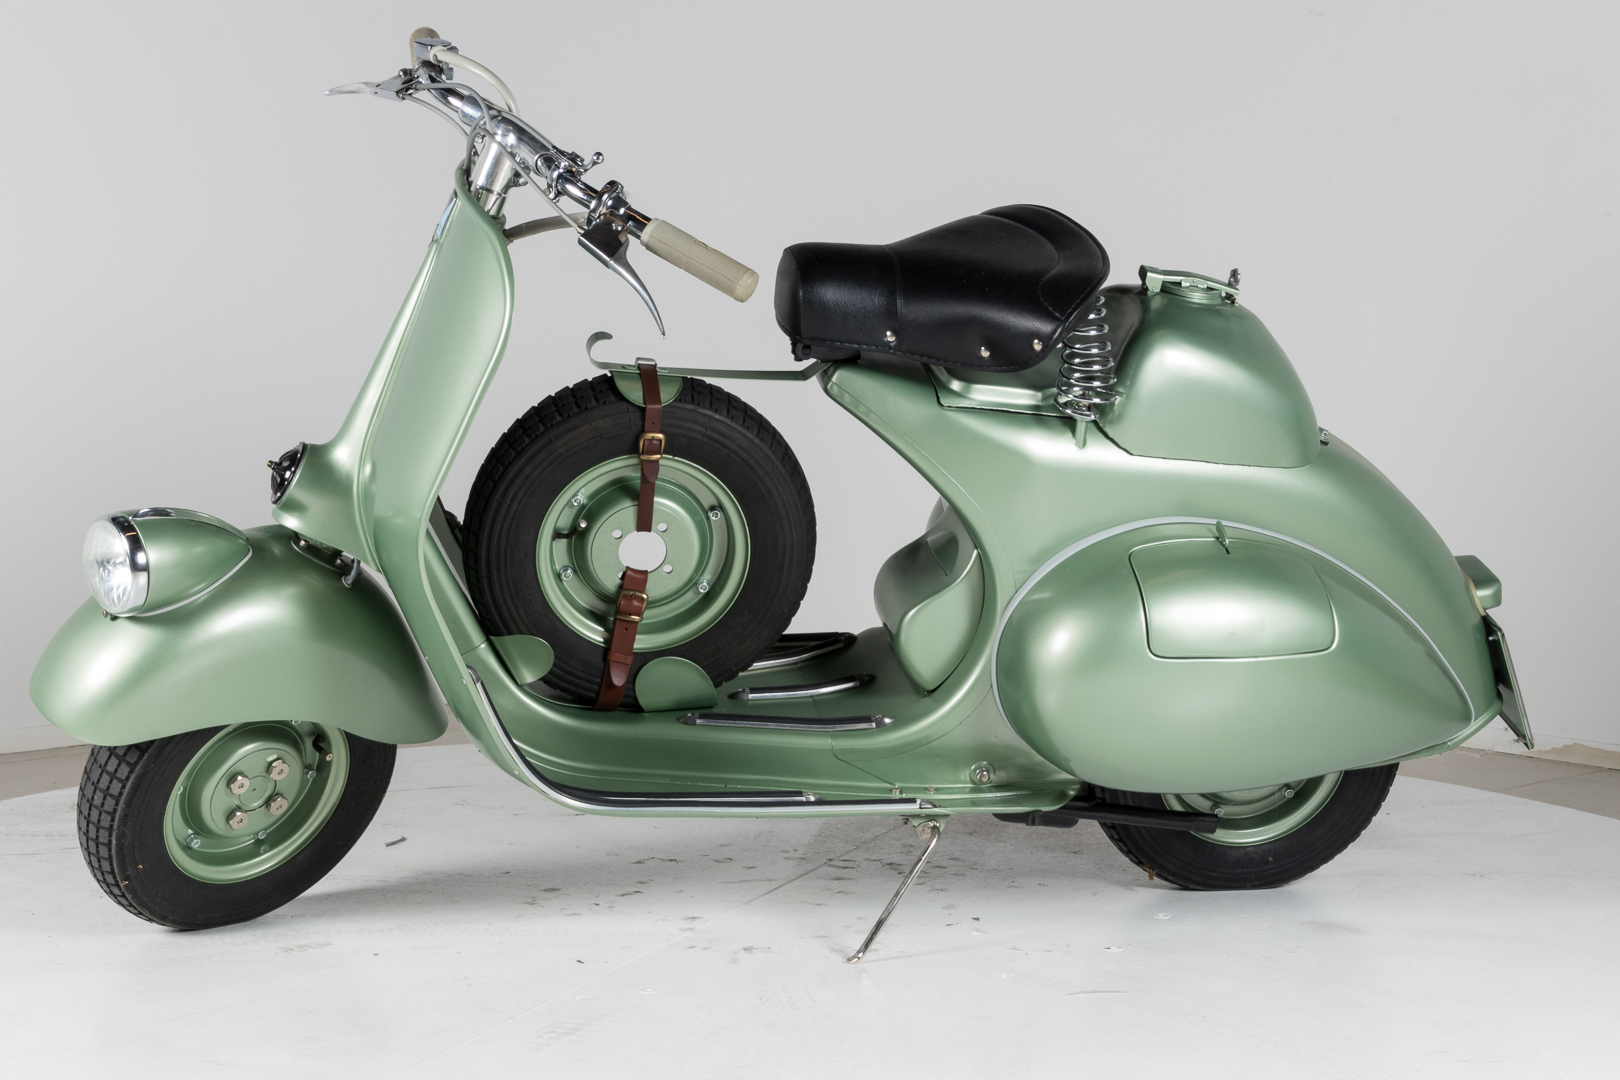 1952 piaggio vespa 125 sport classic driver market. Black Bedroom Furniture Sets. Home Design Ideas